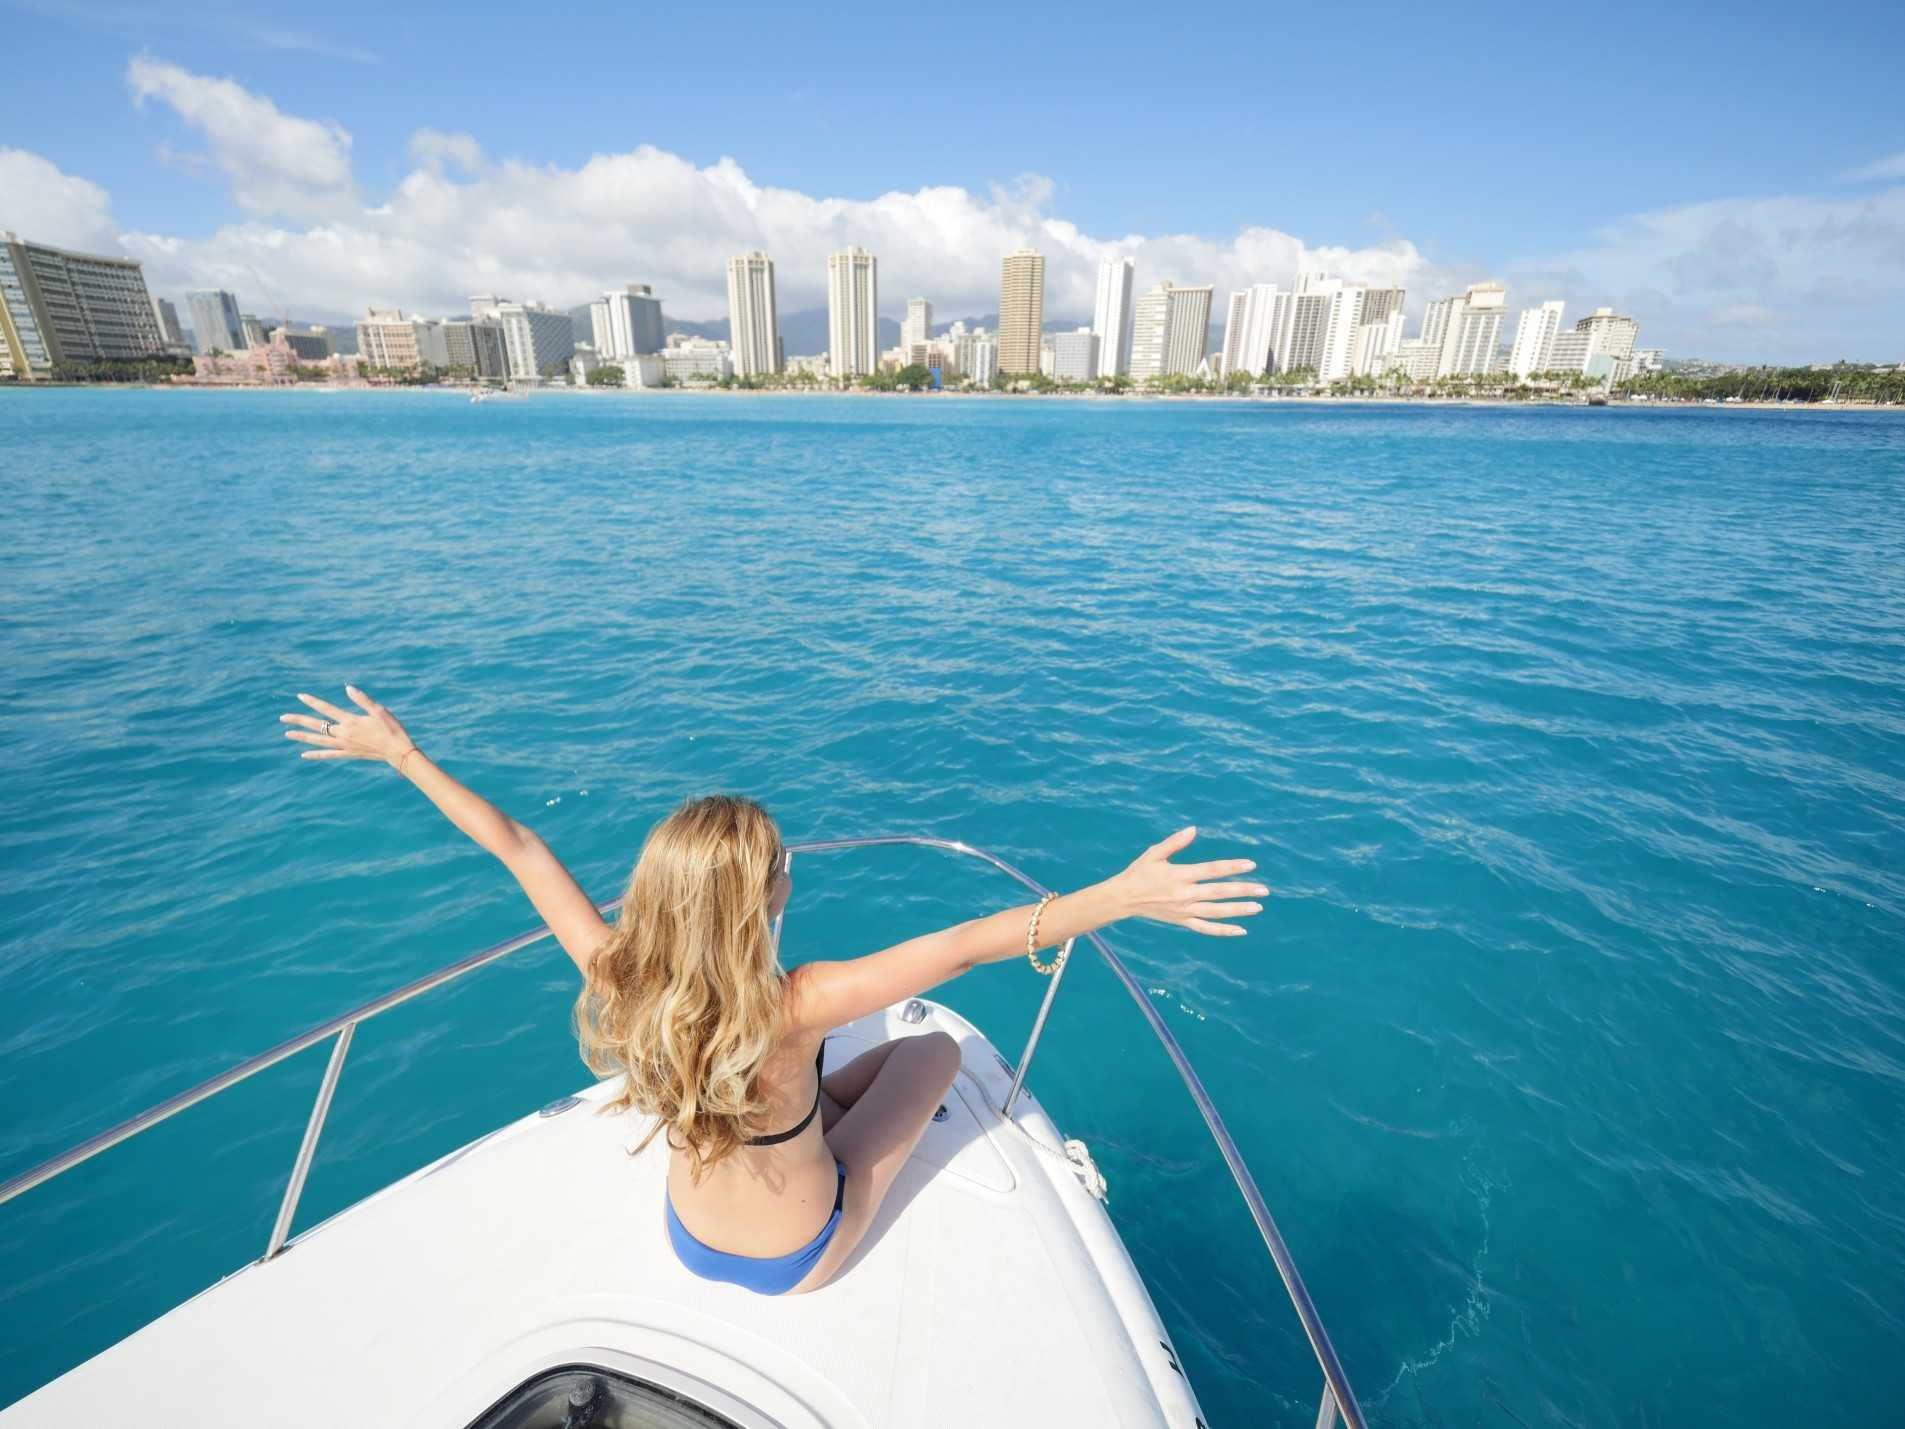 welcoming-honolulu-city-from-the-yacht_t20_V7Vvo7_optimized